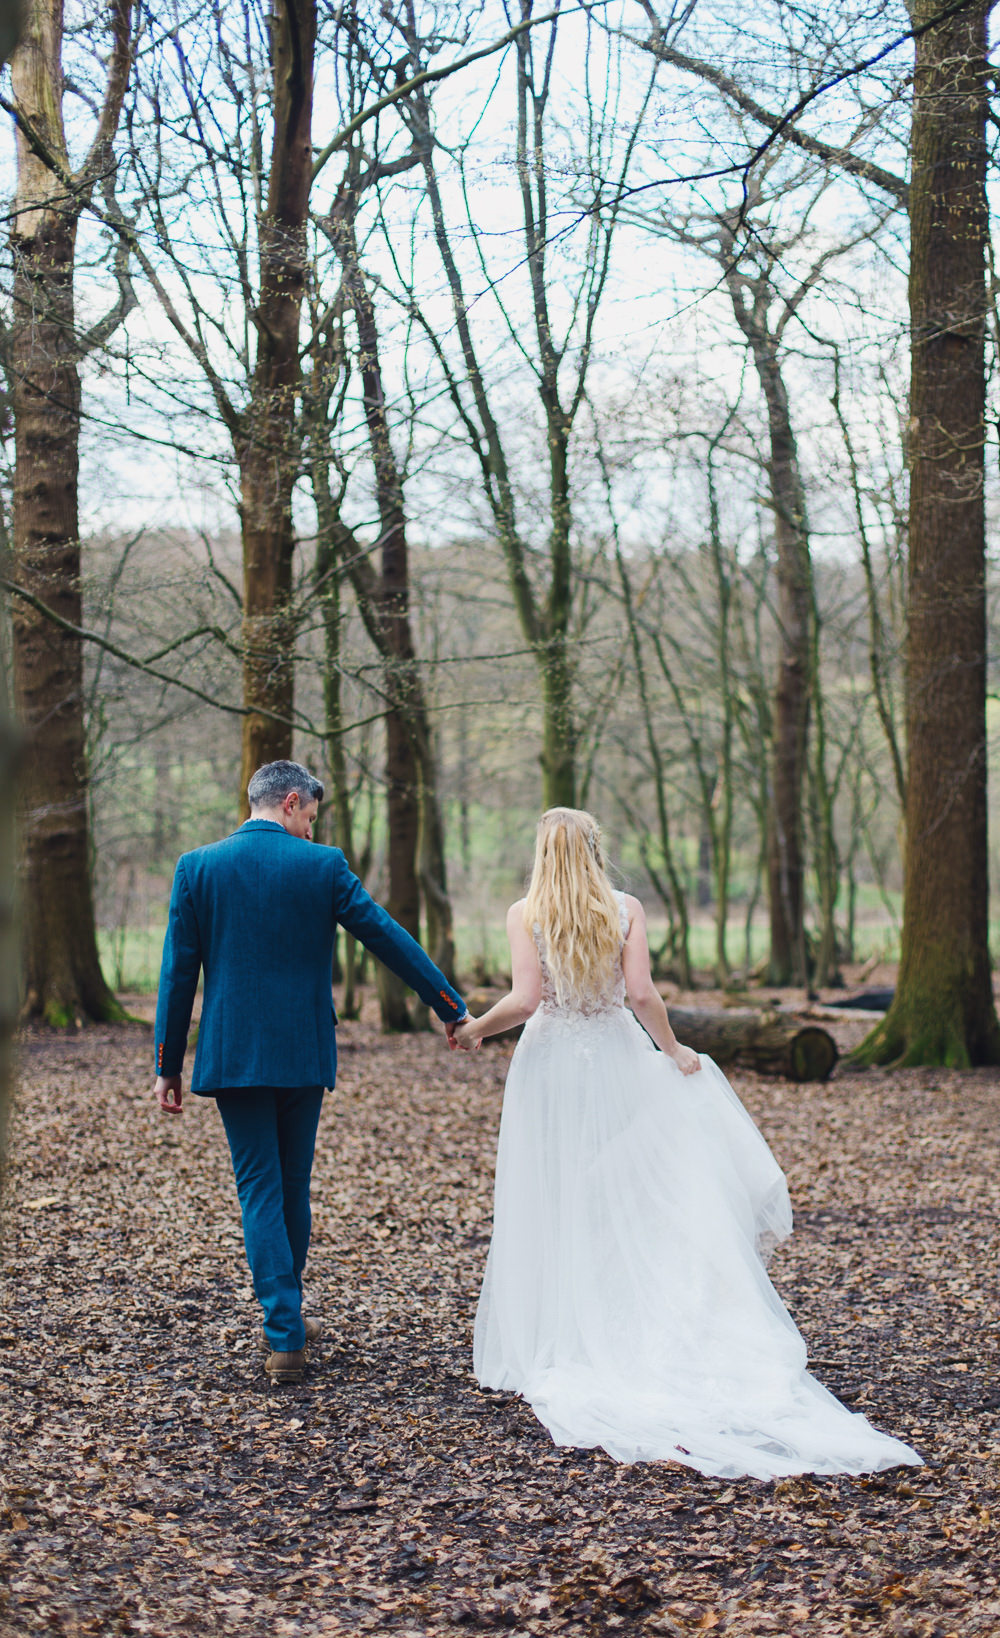 Dress Bride Bridal Gown Train Tulle Floral Flowers Nordic Woodland Elopement Wedding Ideas Nina Wernicke Photography